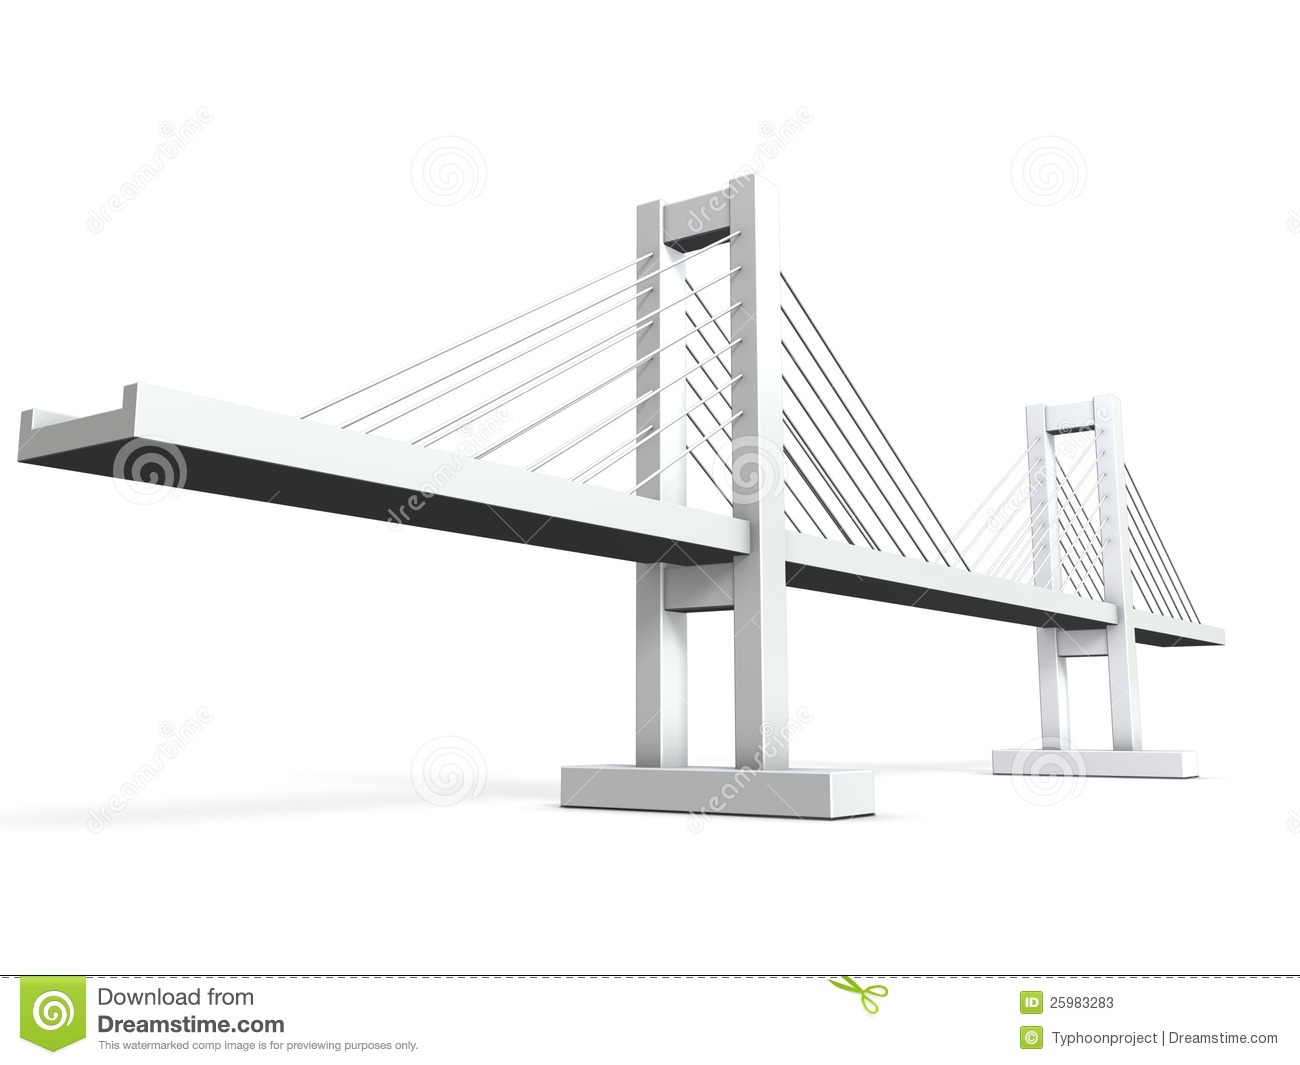 Picture Book Illustration Making An Architectural Model: Architectural Models Of Cable-stayed Bridge Stock